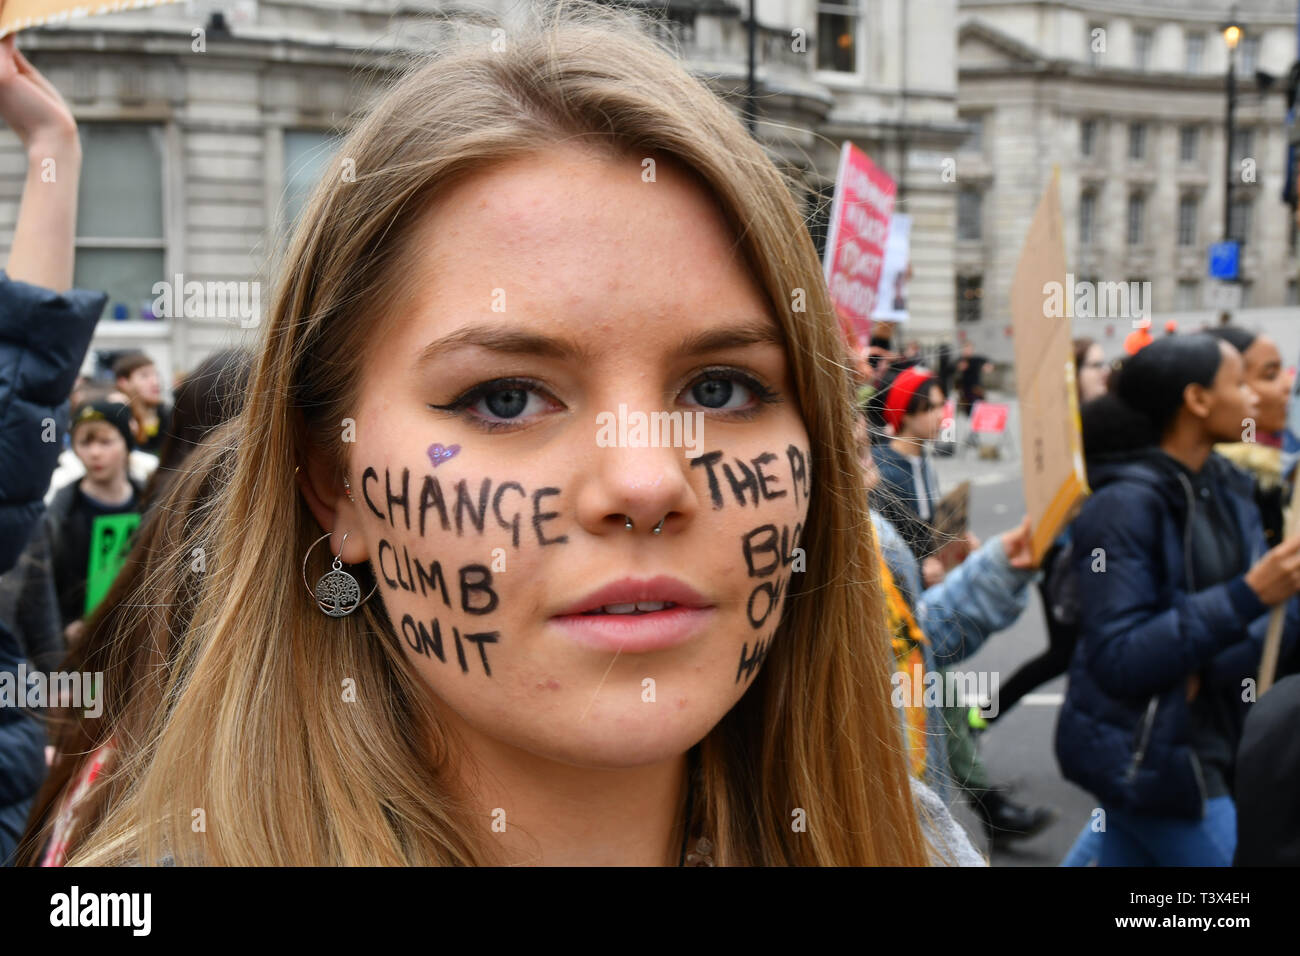 London, UK. 12th Apr 2019. Hundreds of noise youths on London - YouthStrike4Climate - Strike/3 at Parliament Square march to centre London, UK. 12th Apr, 2019. Credit: Picture Capital/Alamy Live News Stock Photo